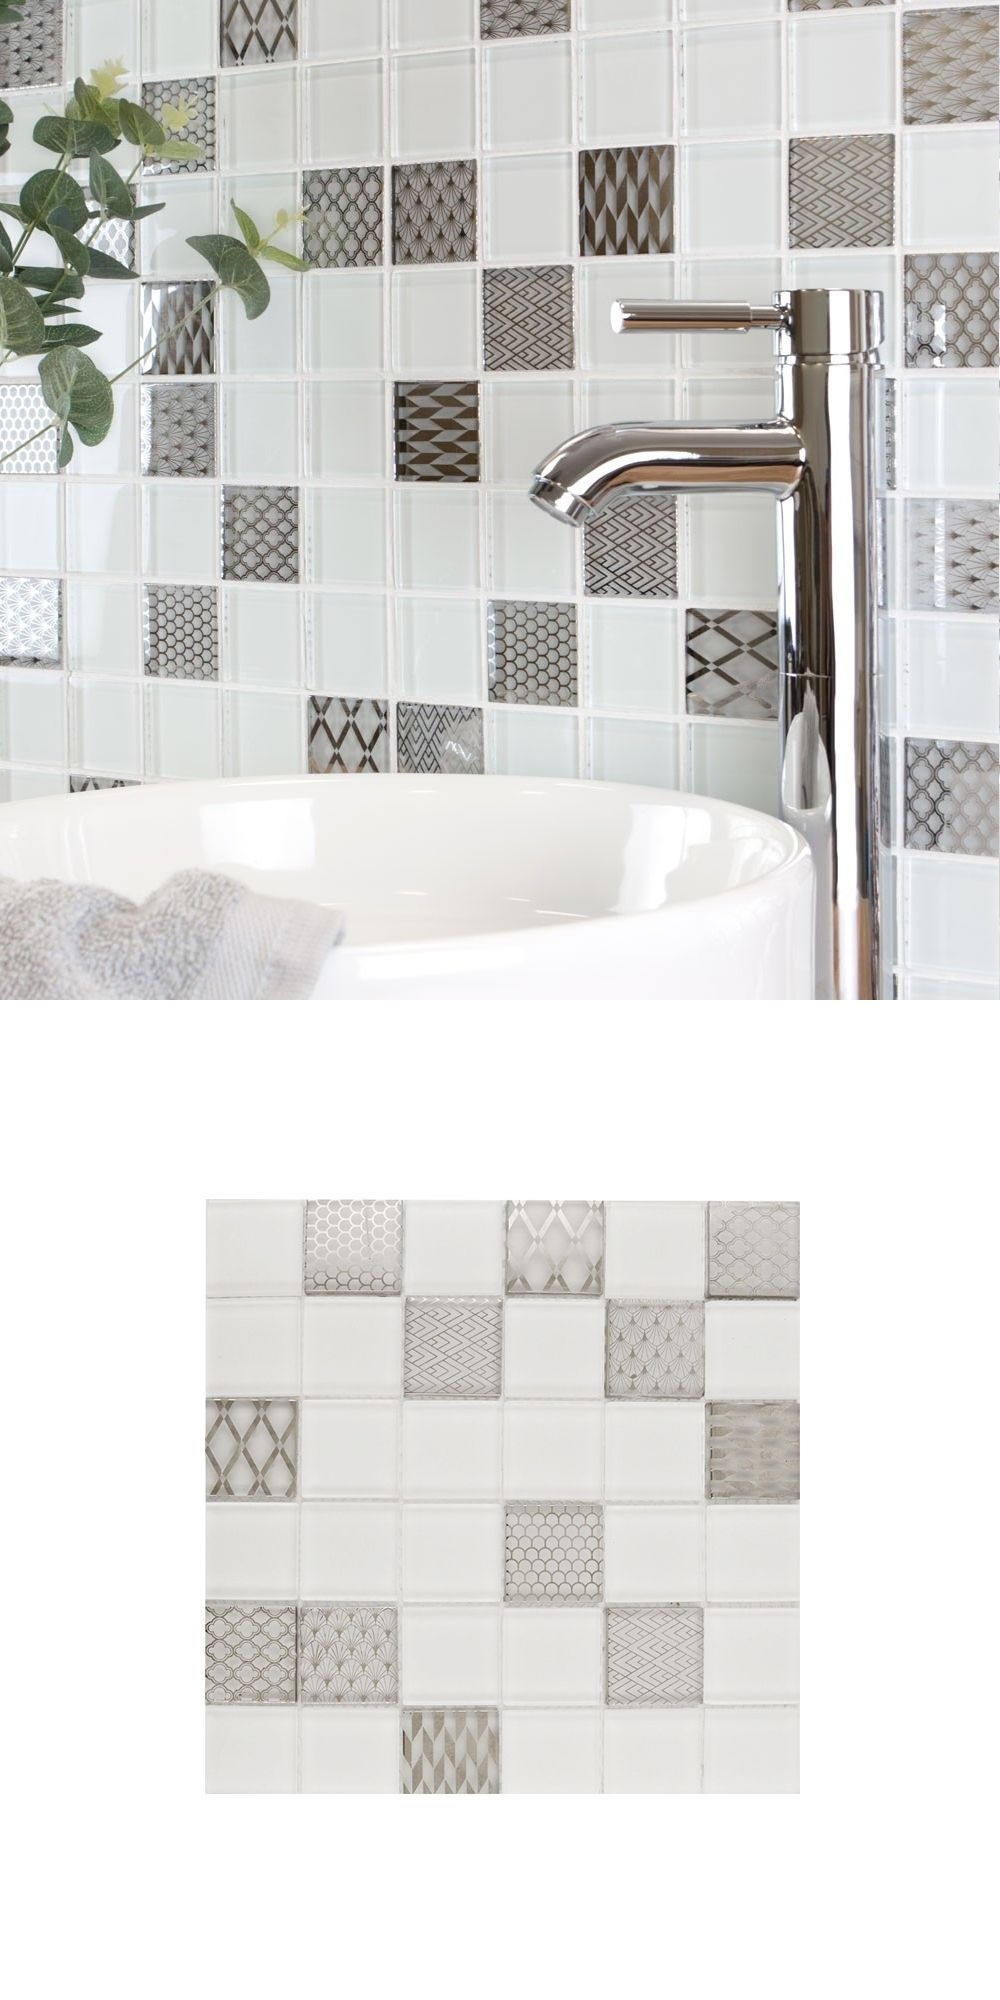 2 Quick Com 2 Quick Resources And Information Shower Tile Small Bathroom Tiles Tile Bathroom